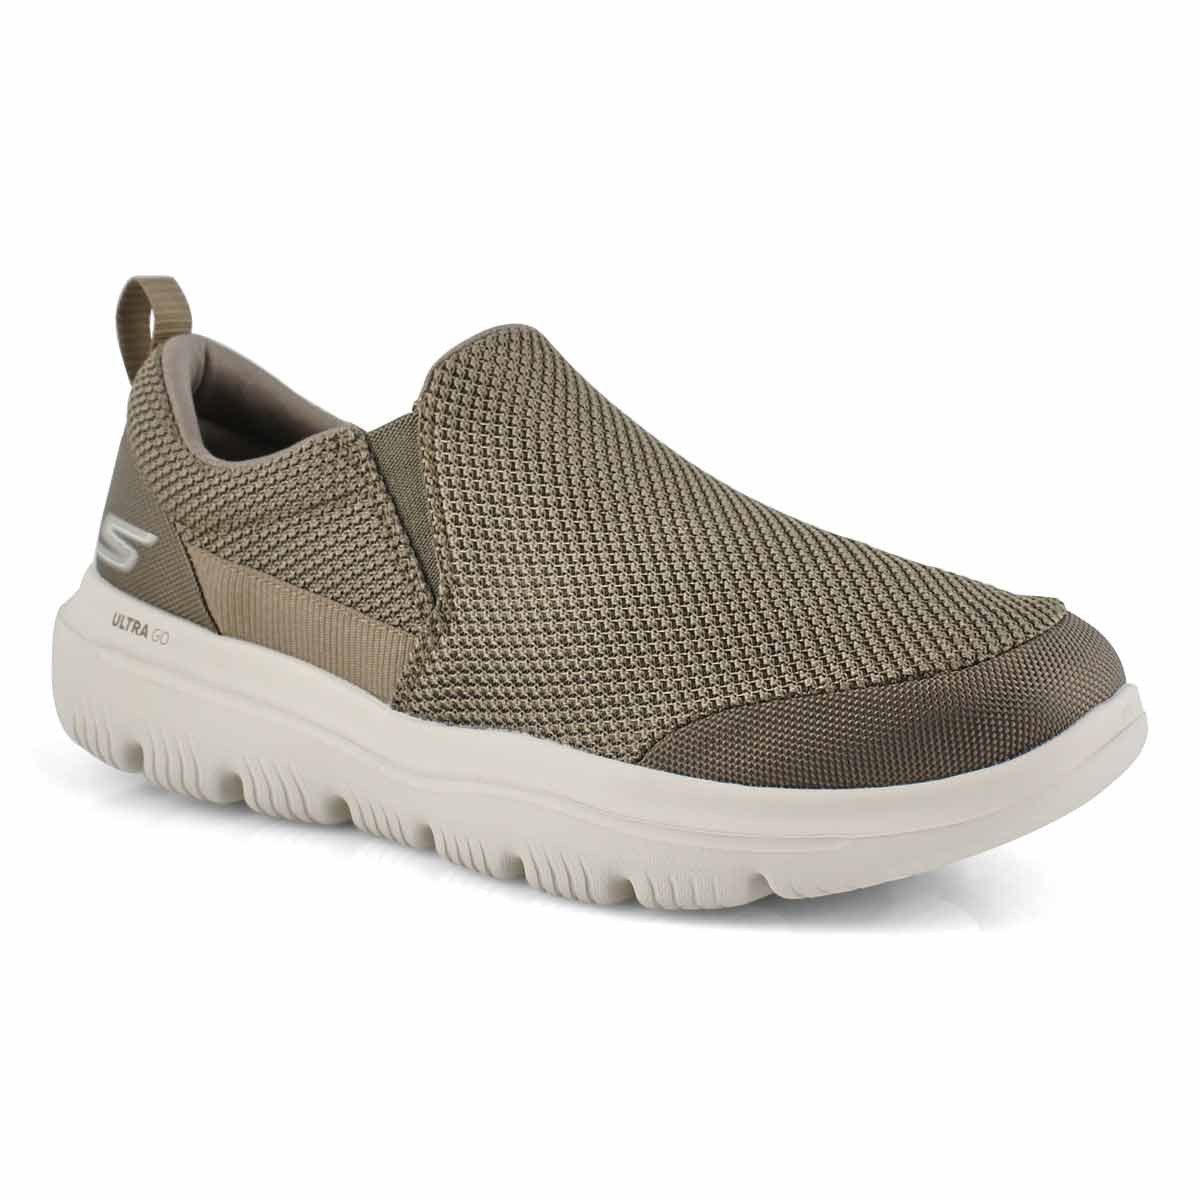 Mns GOwalk Ultra Impeccable khki slip on